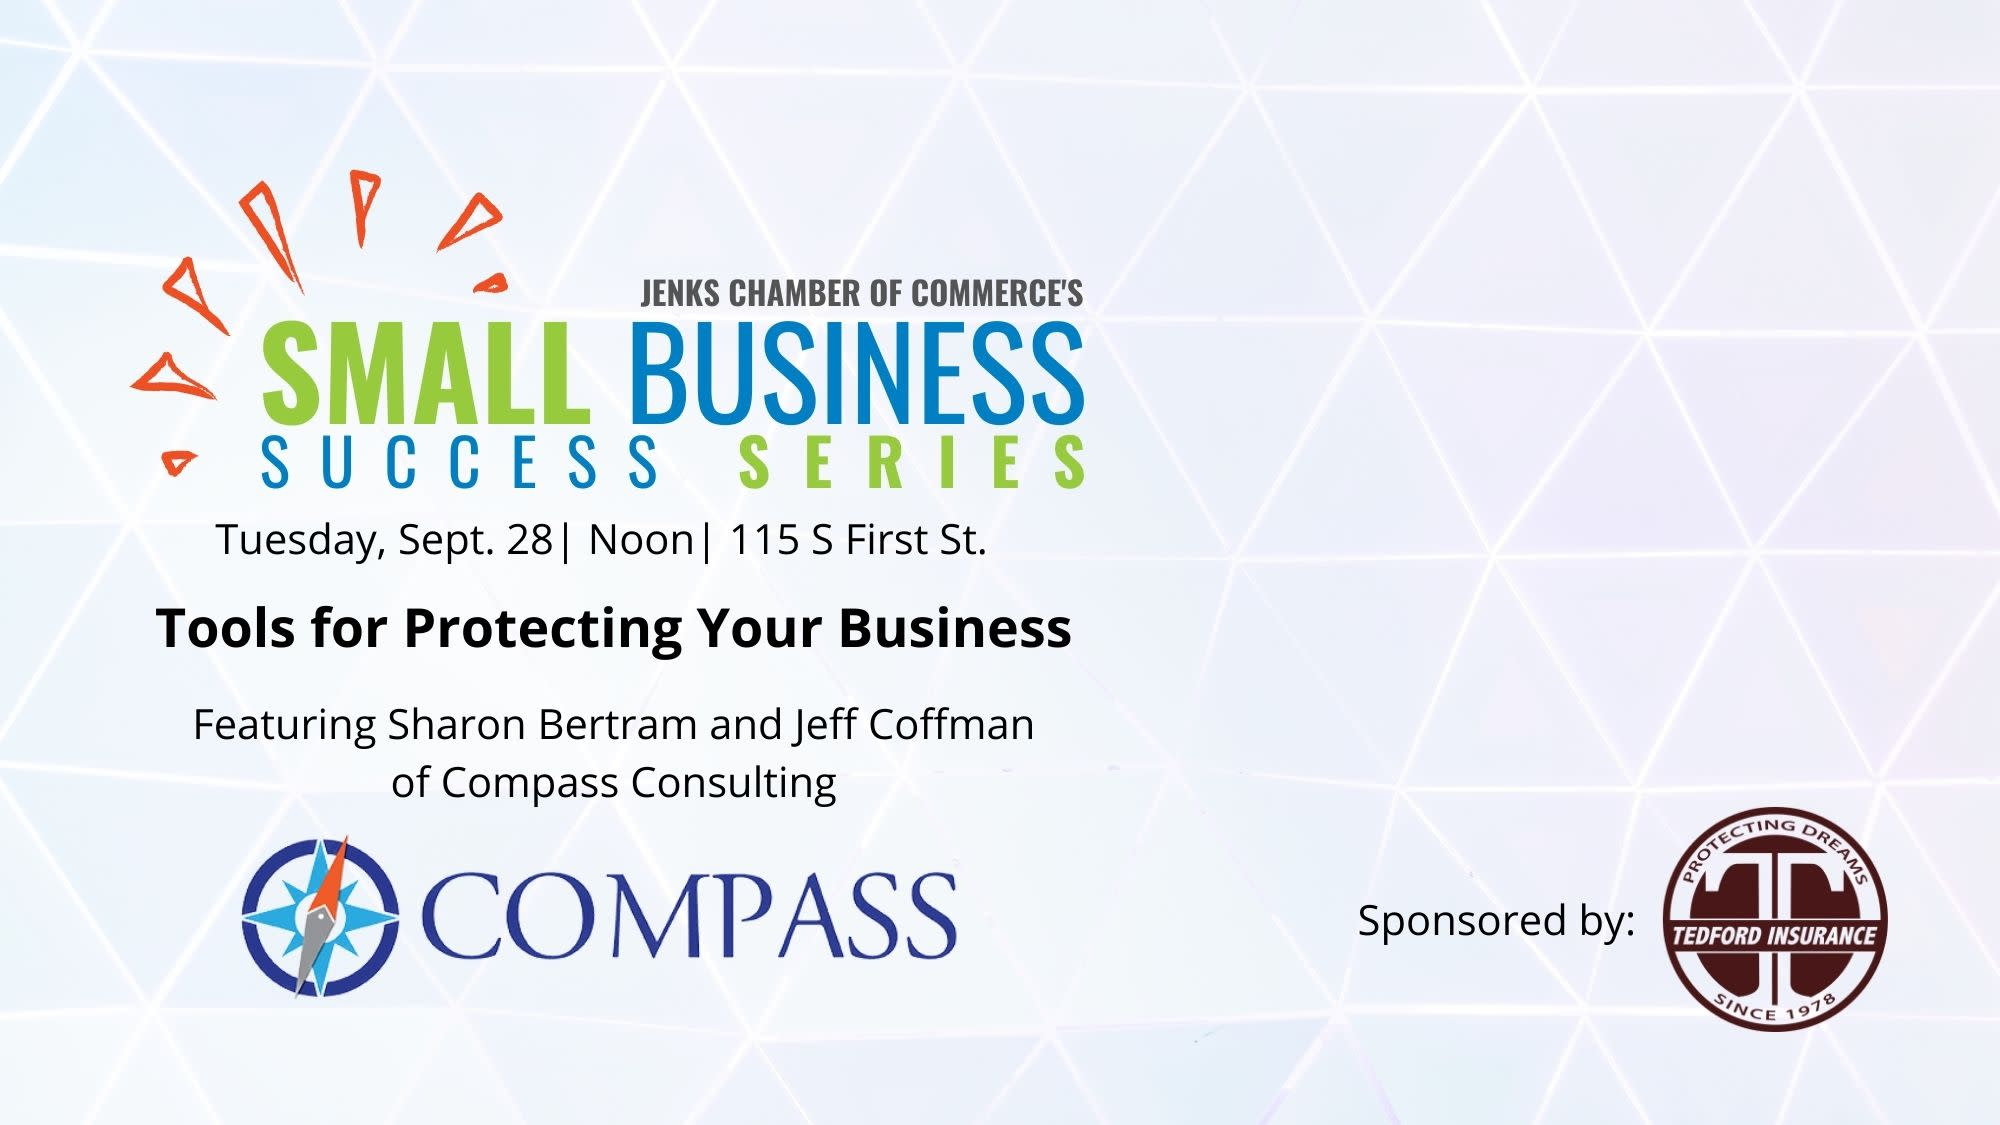 A graphic for the Small Business Success Series on Sept. 28